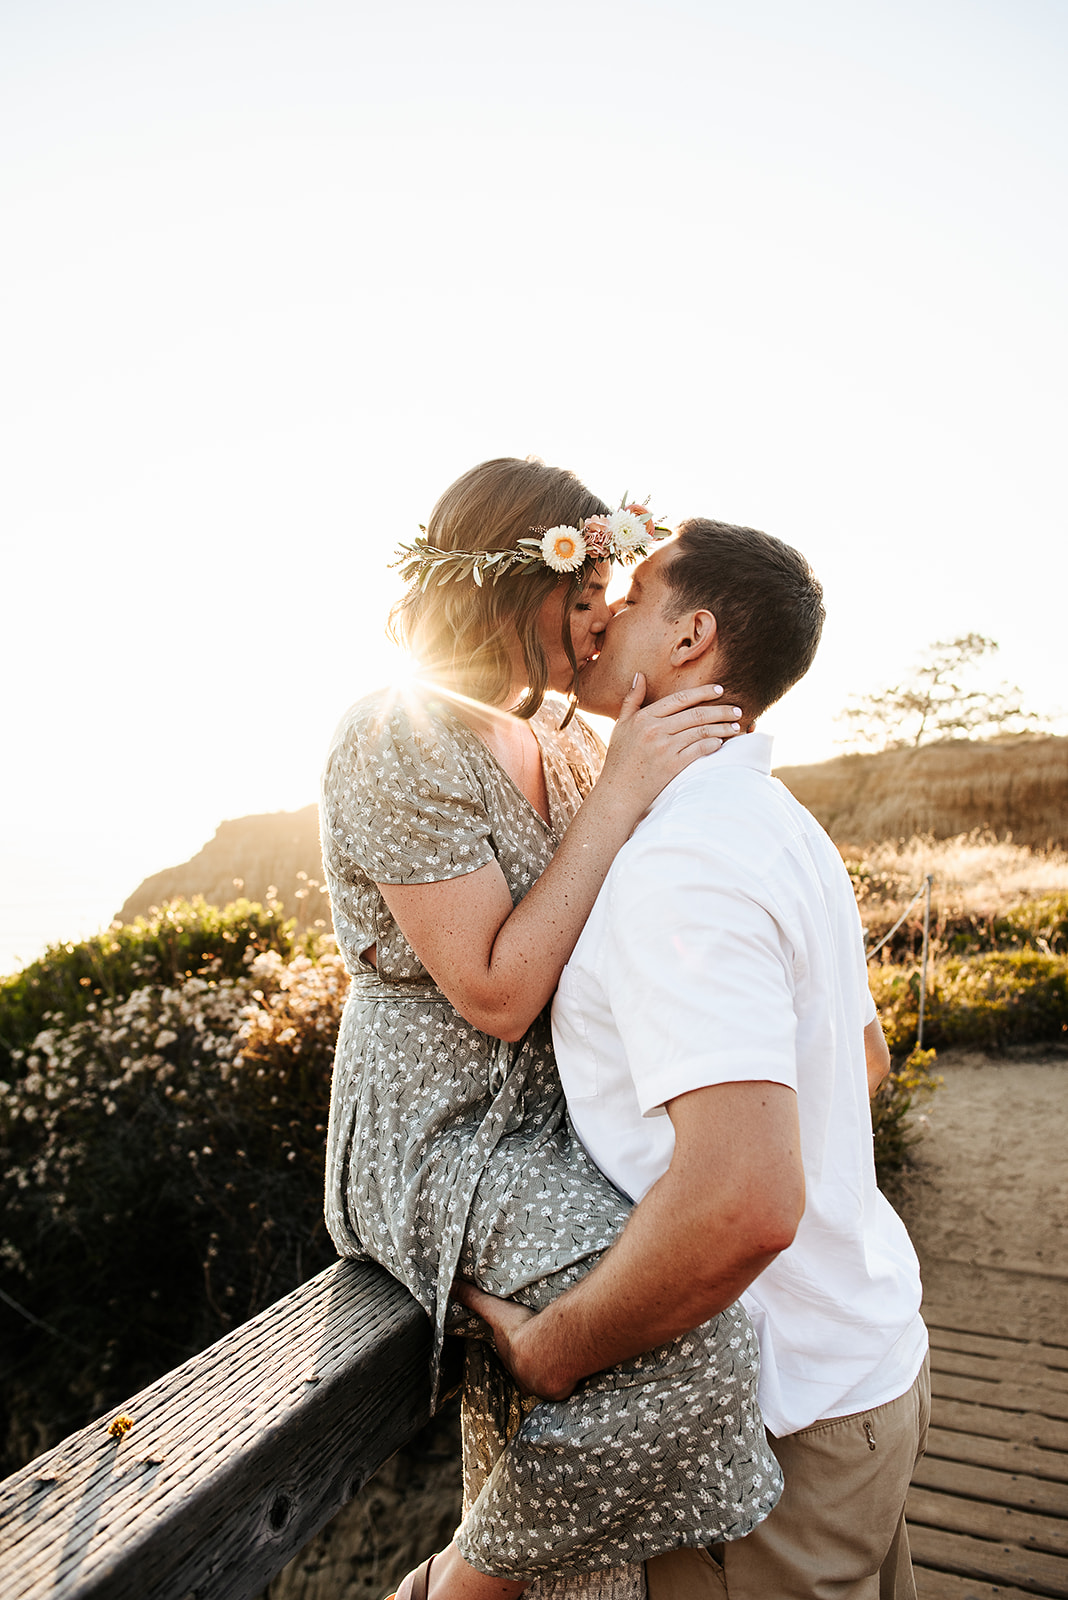 SoCal_Standard_-_San_Diego_Engagement_Photographer_-_Modern_Candid_Destination_Photographer_-_Engagement_Session_at_Torrey_Pines_San_Diego_California_-_Grace_and_Robert-168.jpg